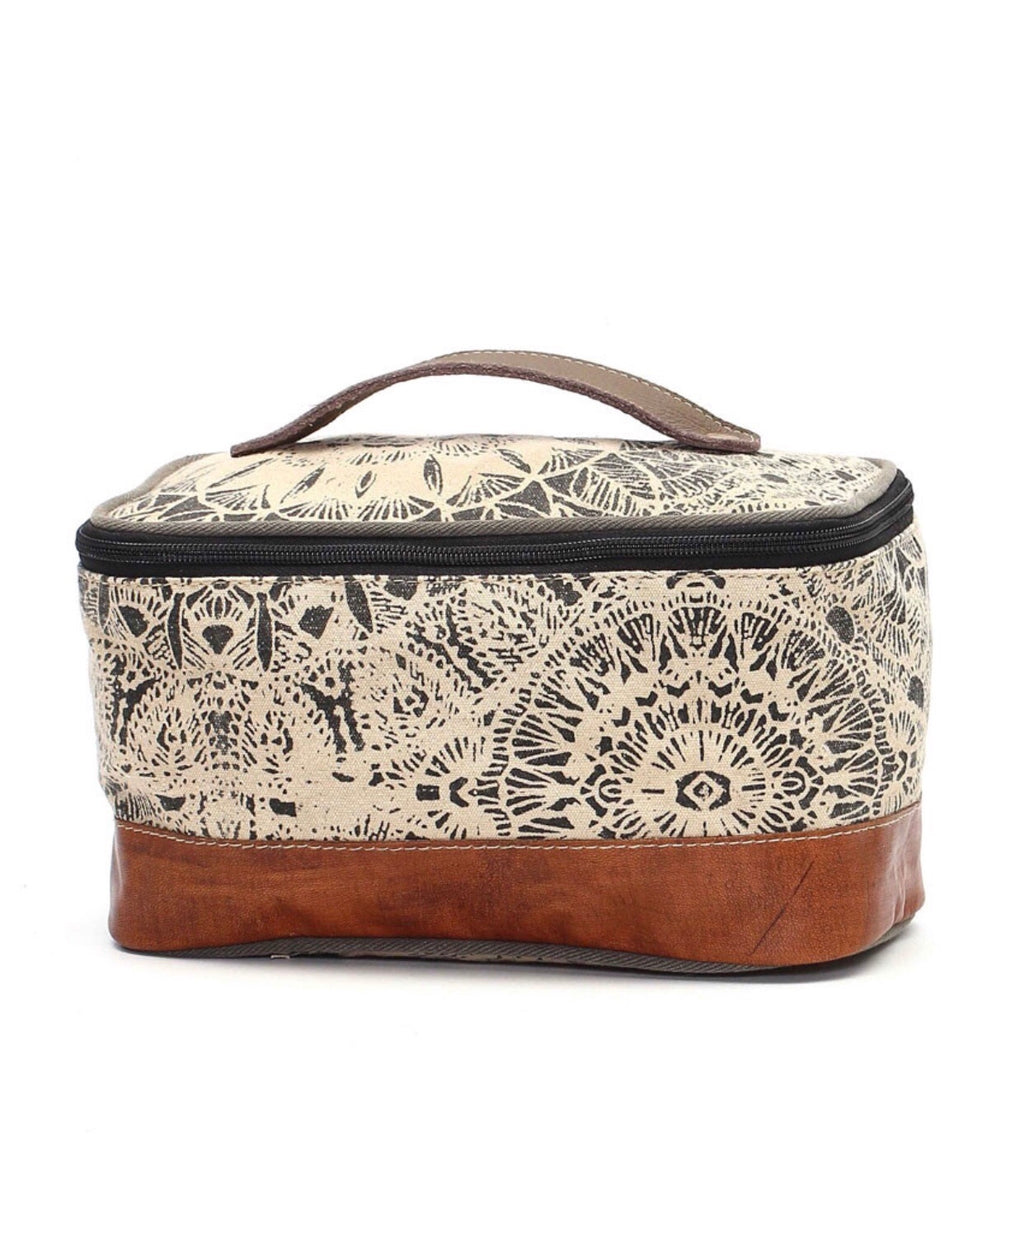 Floral Print Shaving Kit Bag